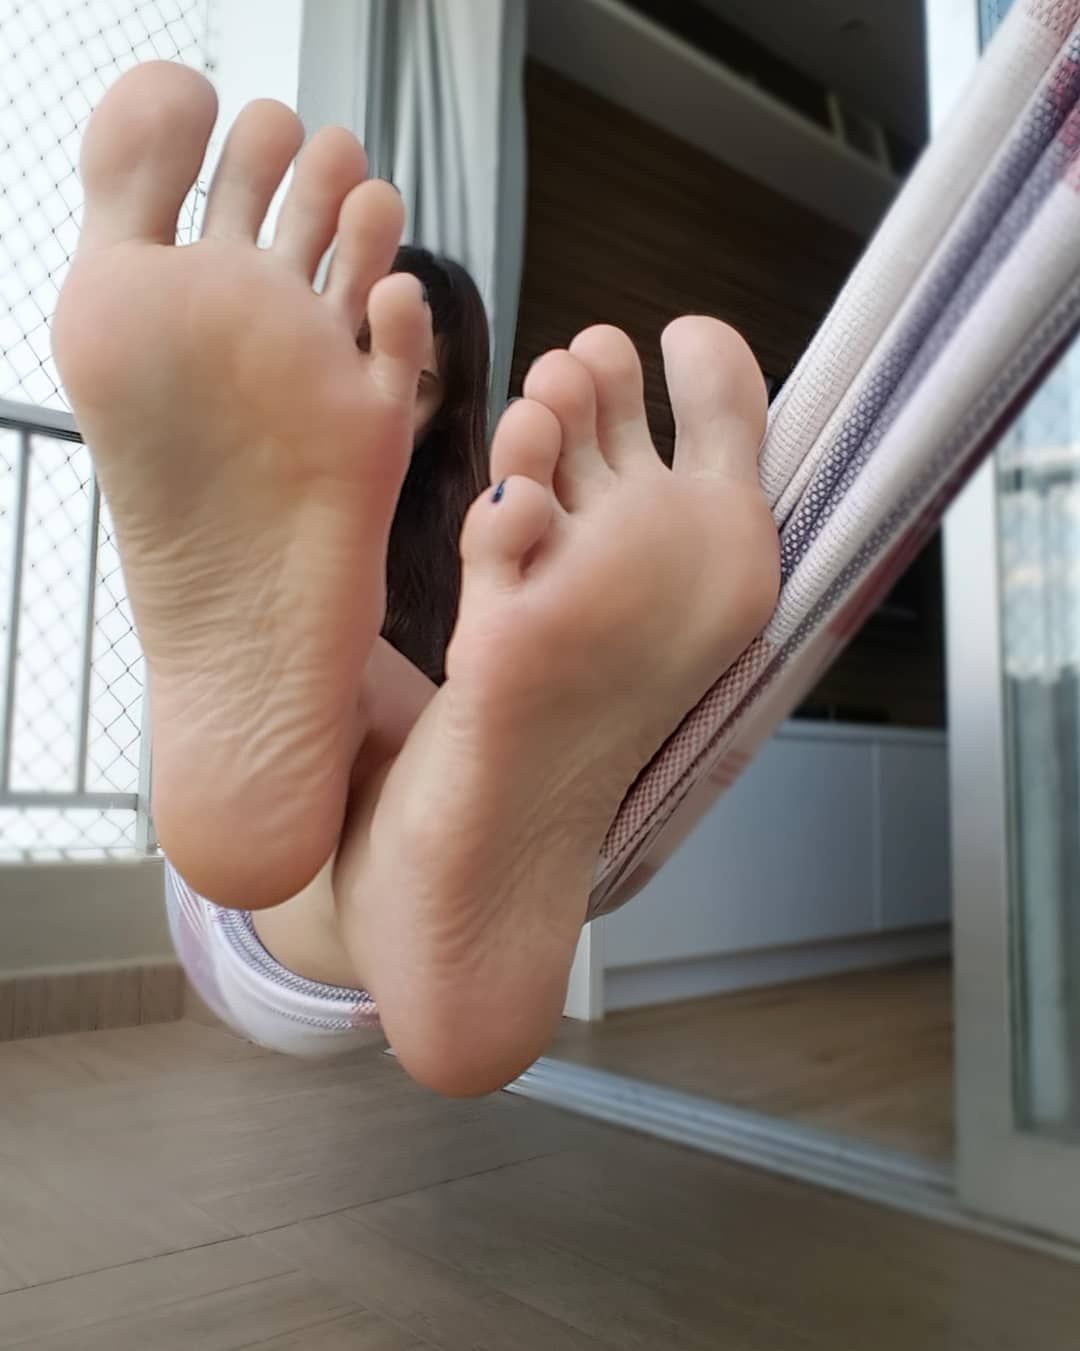 Woman loses toes 13